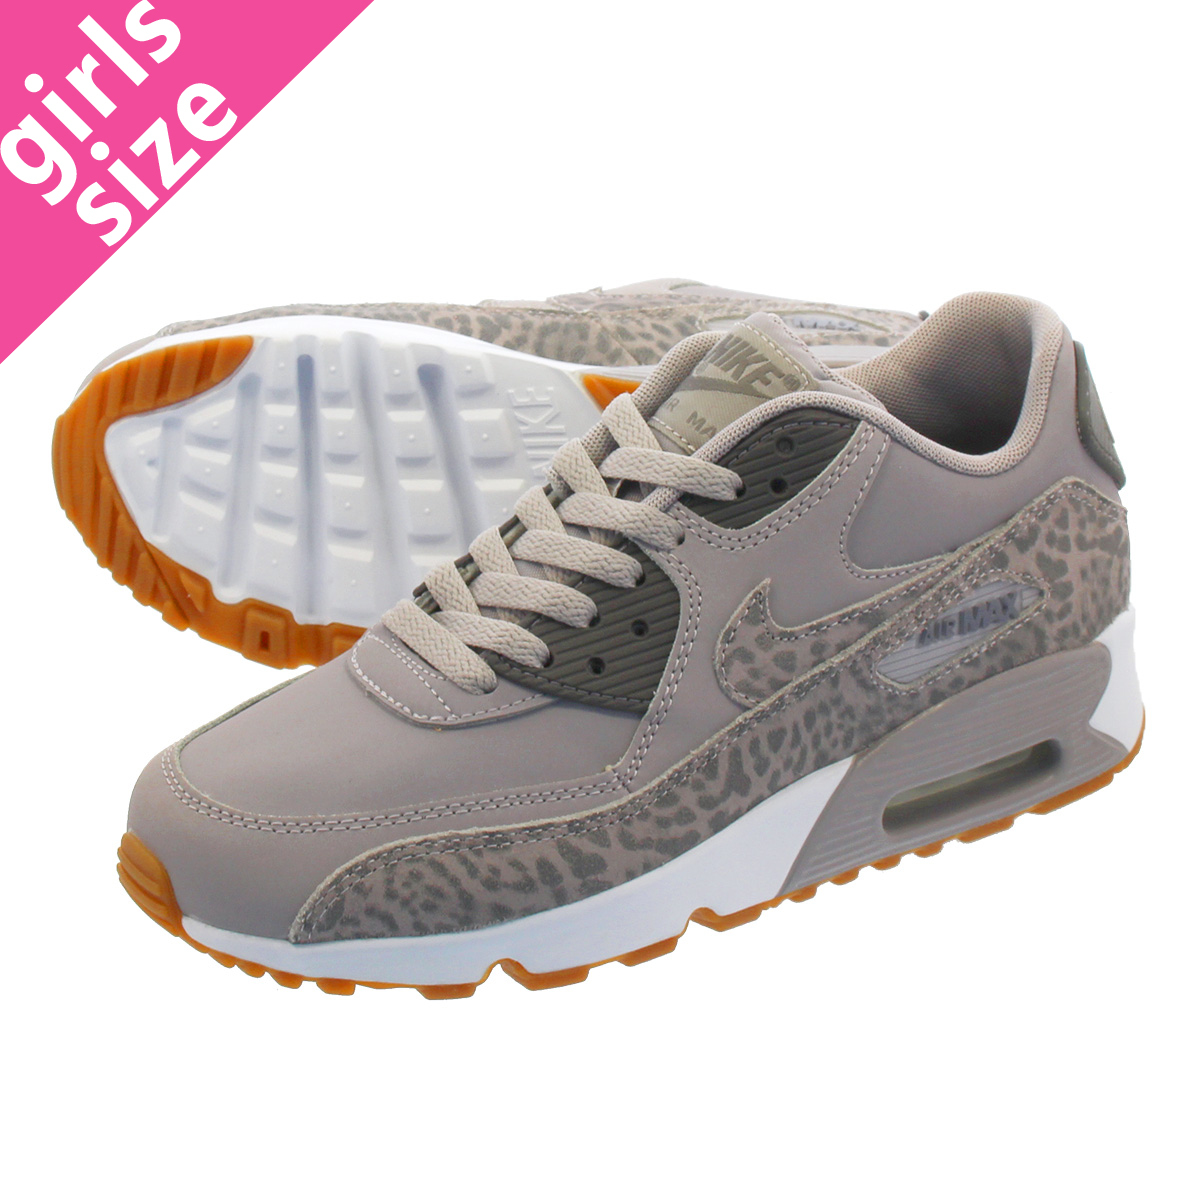 NIKE AIR MAX 90 LTR SE GG Kie Ney AMAX 90 leather SE GG ATMOSPHERE GREYGUNSMOKEWHITE 897,987 004